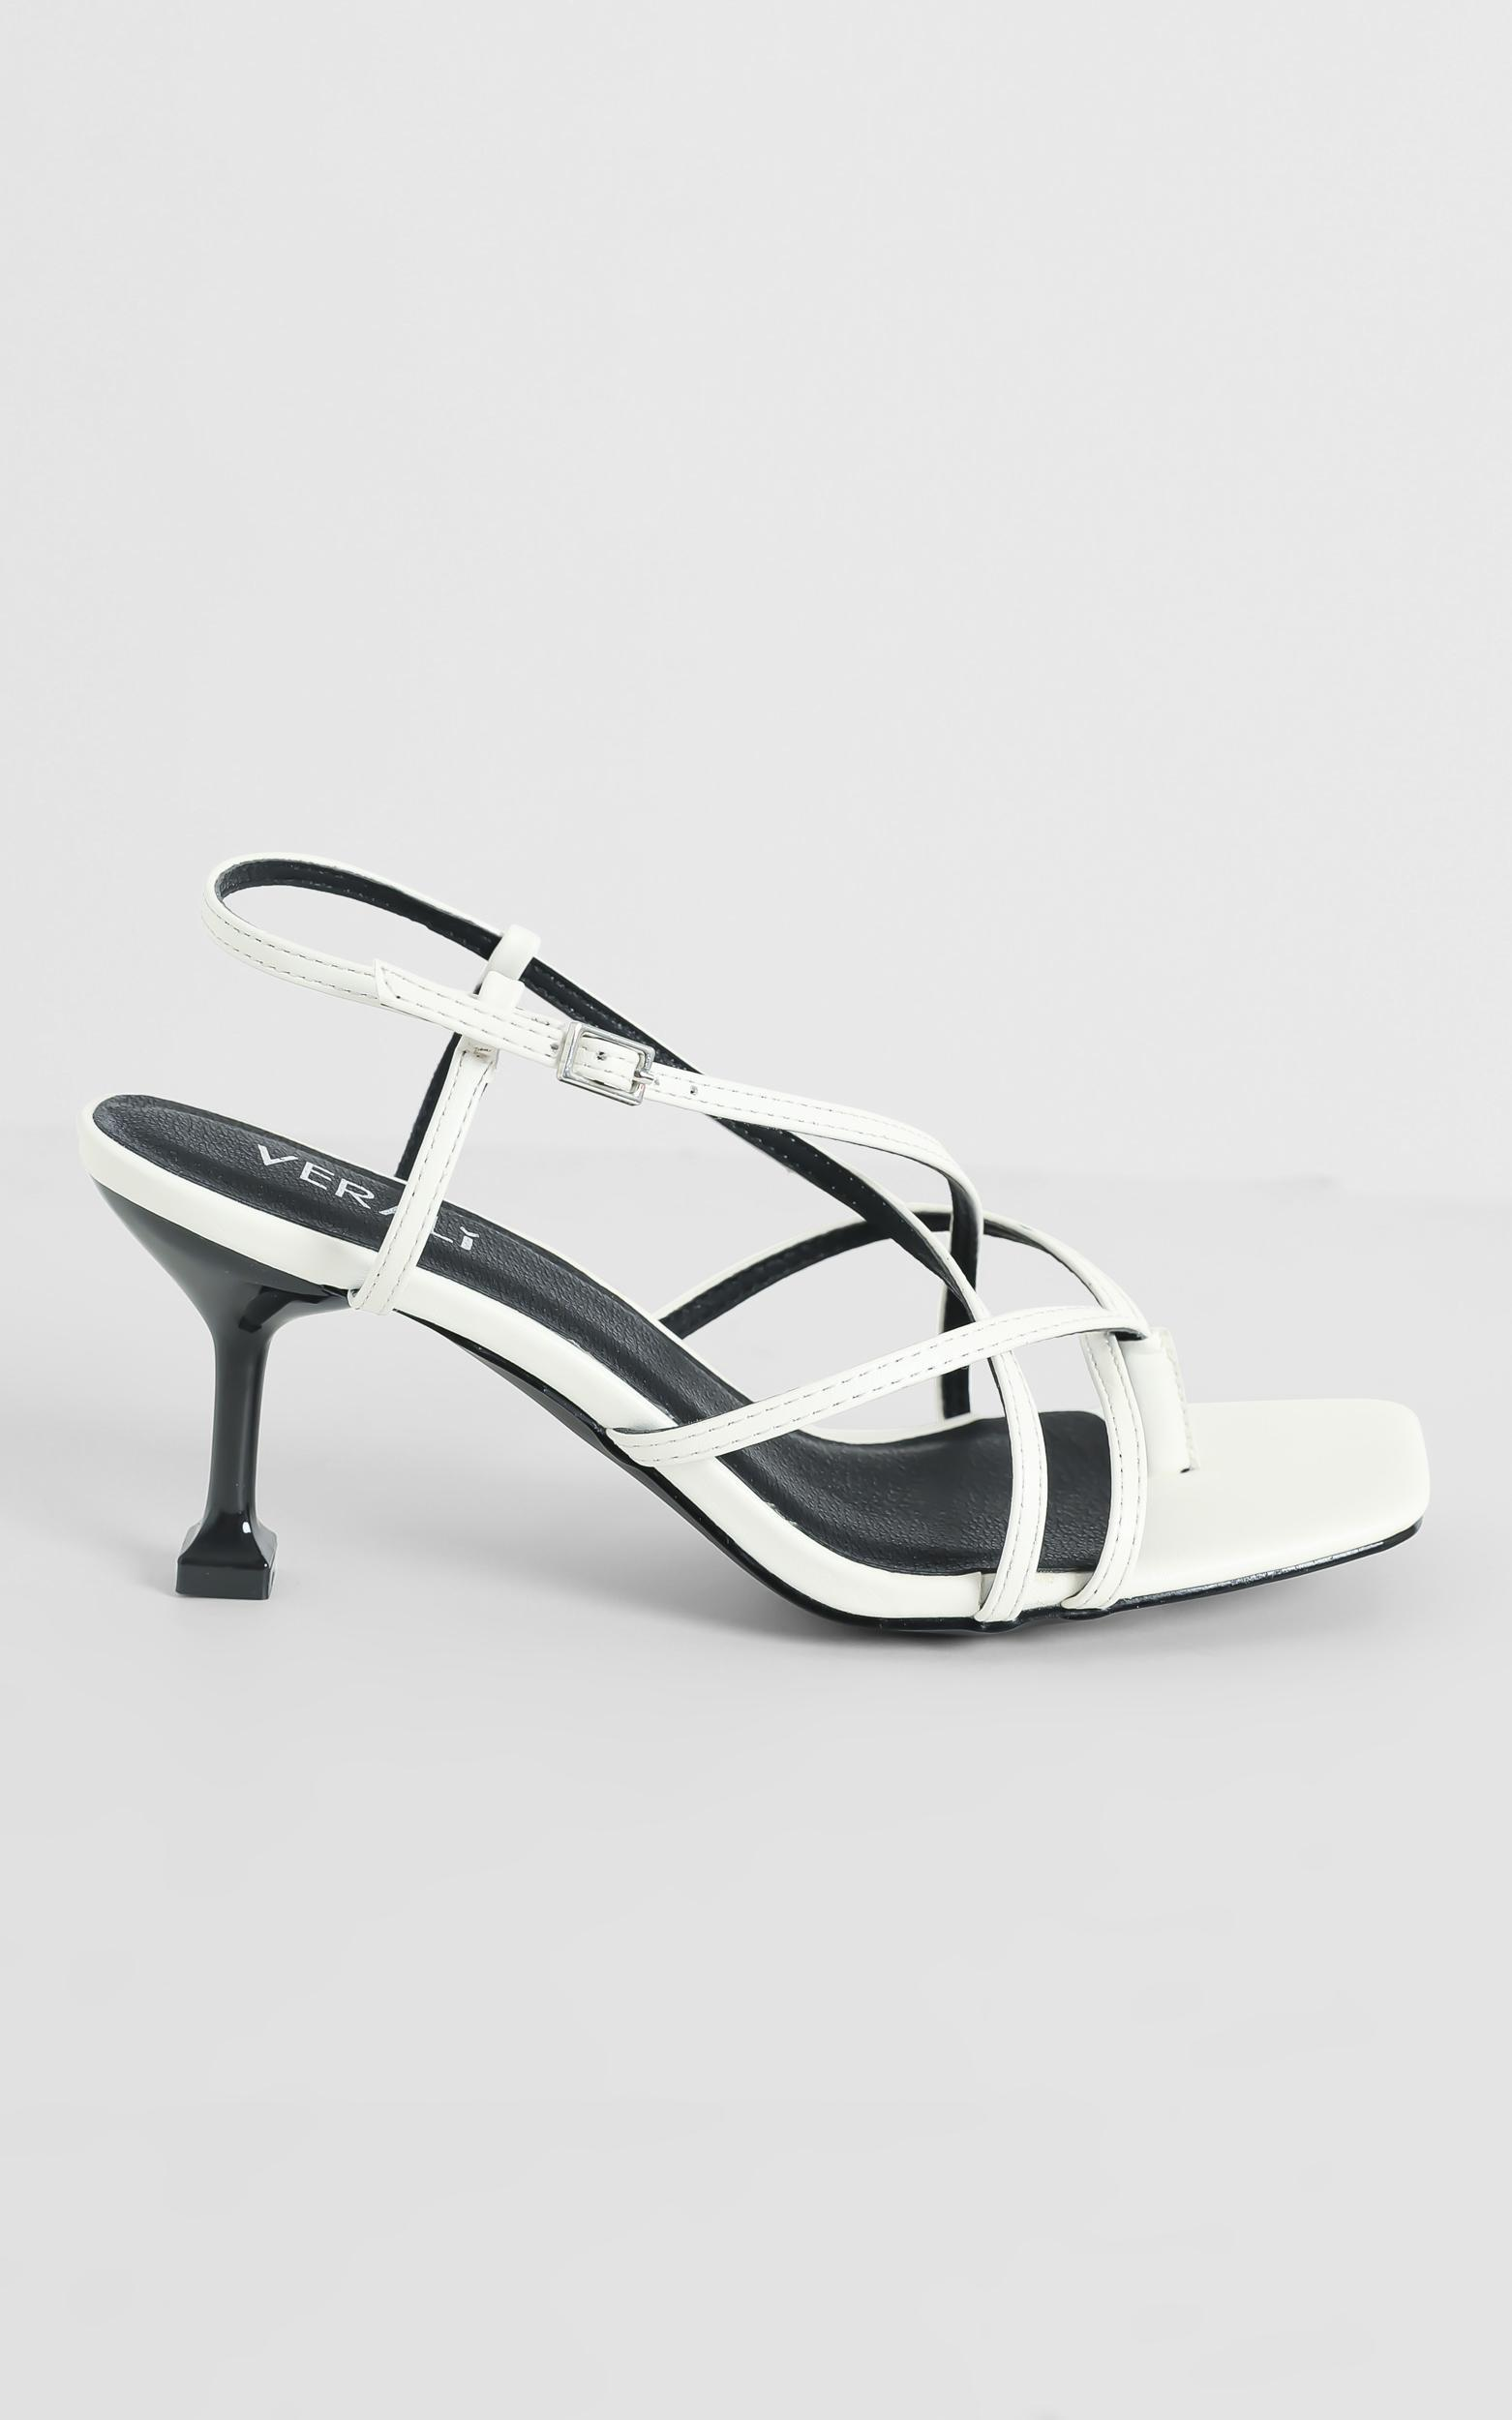 Verali - Neve Heels in White - 5, White, hi-res image number null